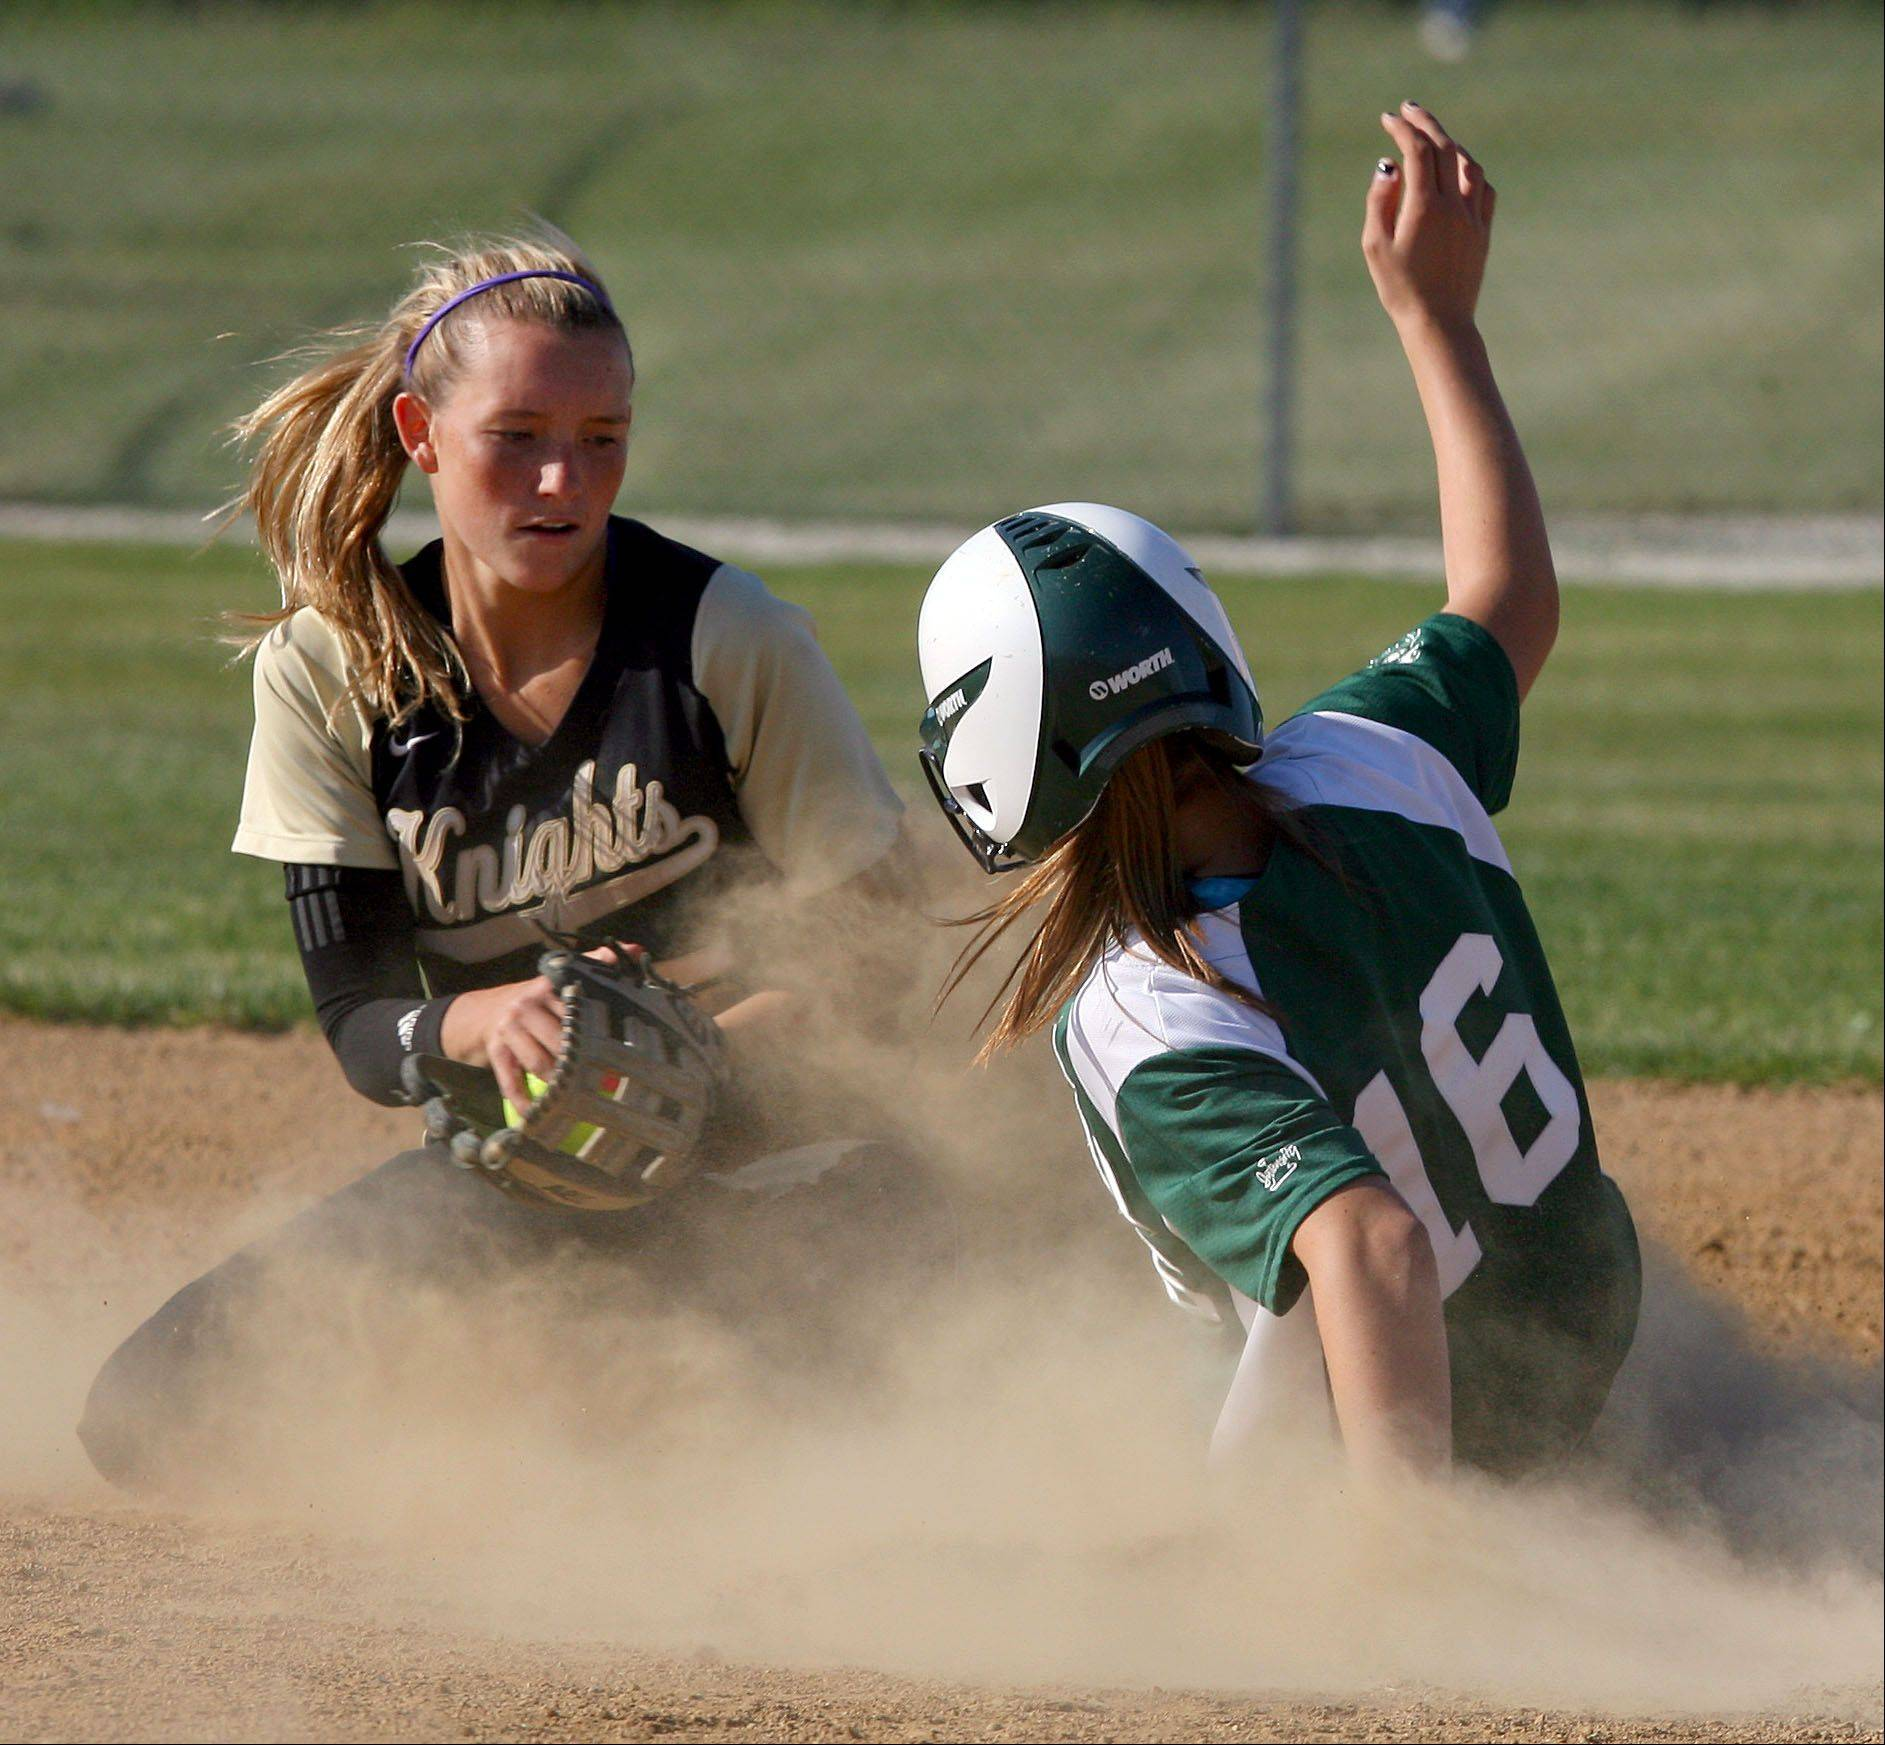 Grayslake North�s Jordyn Bowen, left, tries to tag Grayslake Central�s Caitlin Flary during Class 3A regional semifinal play last spring at Antioch.